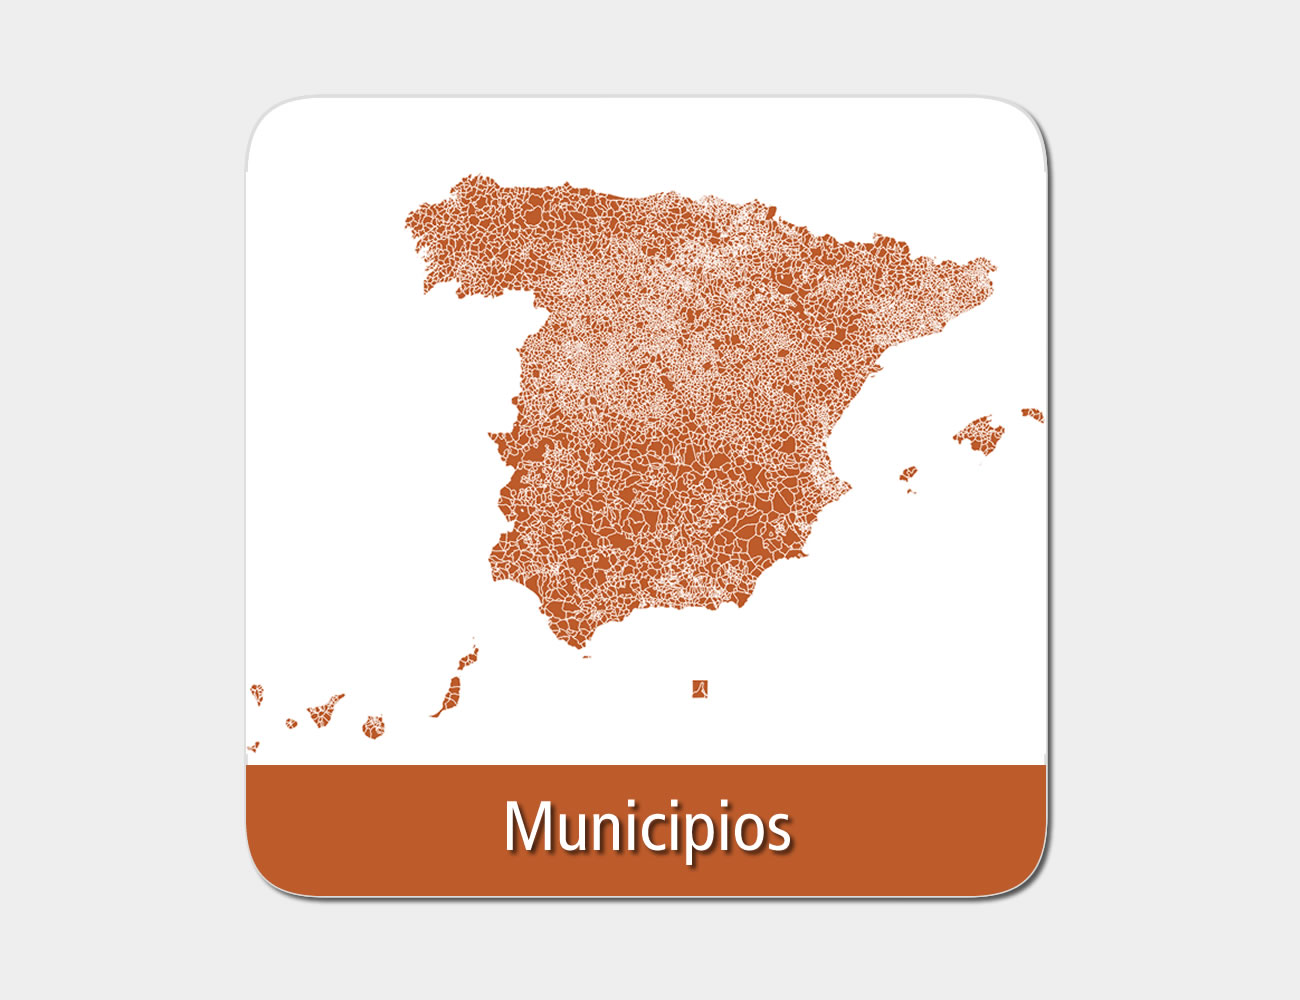 municipios_over